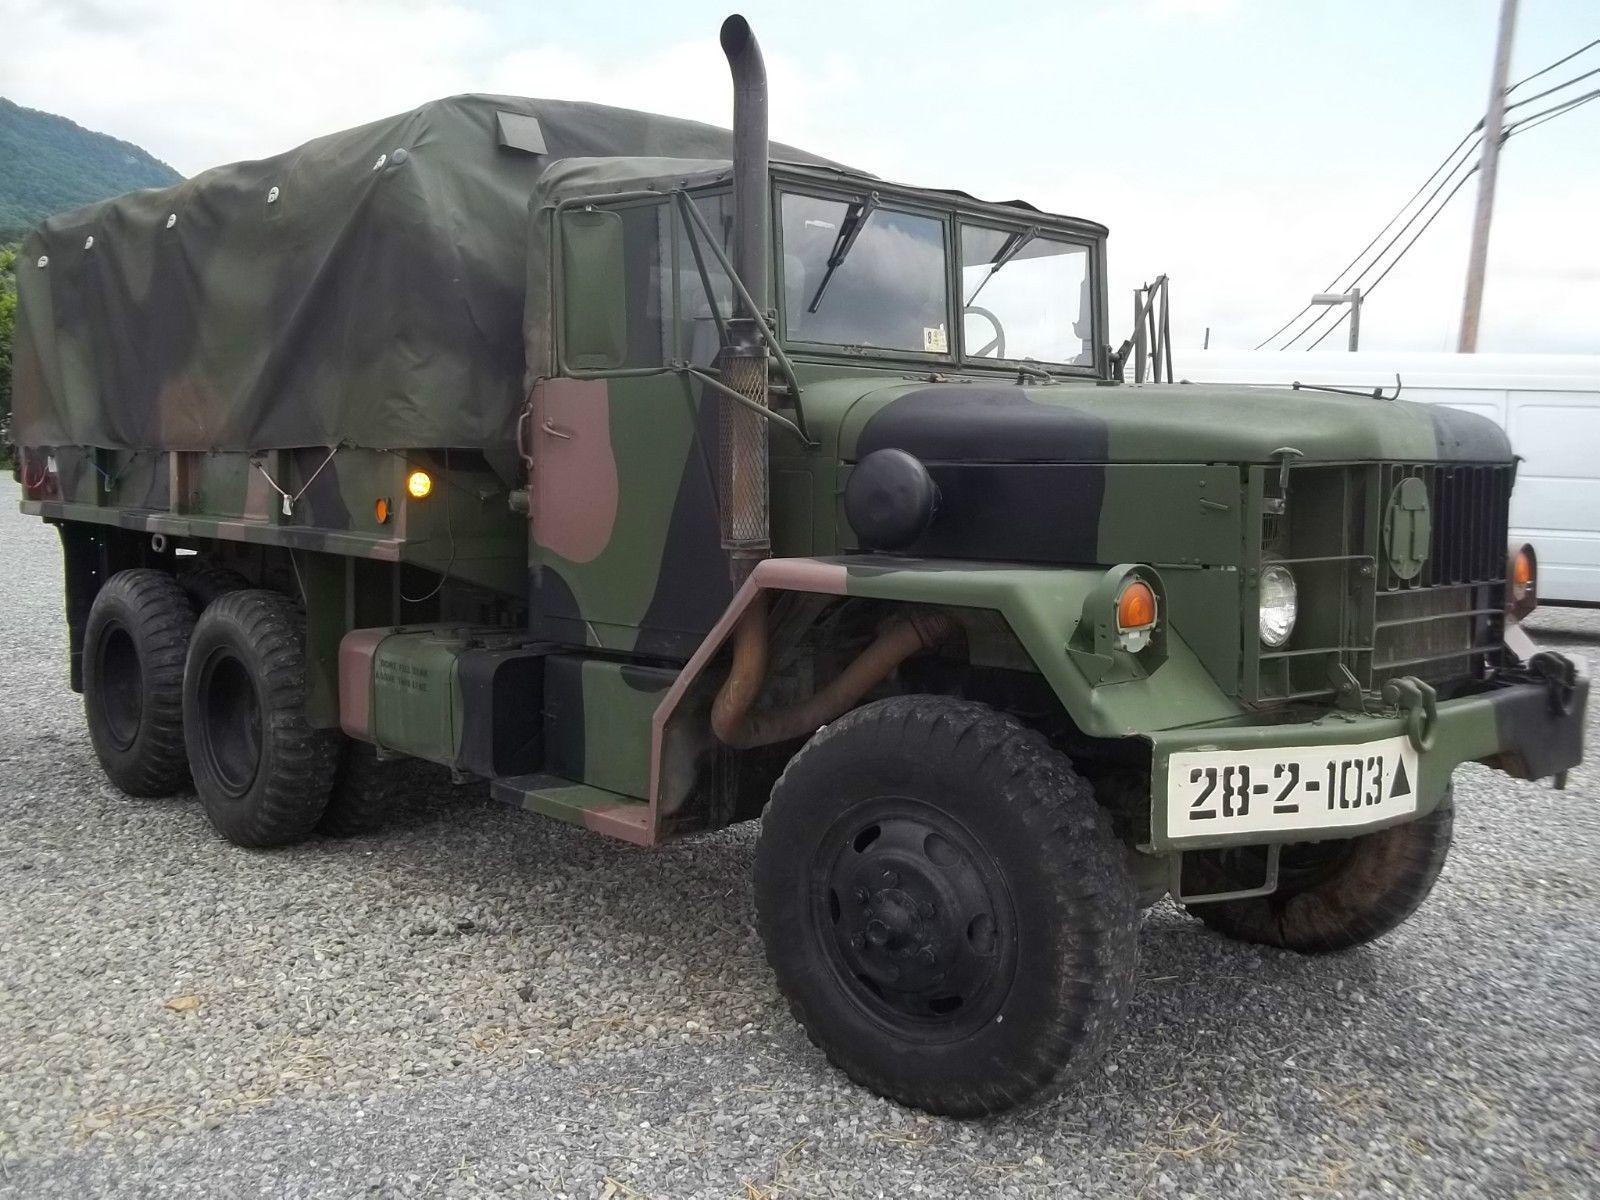 1967 Kaiser 6x6 Armored vehicles, Jeep truck, Heavy truck